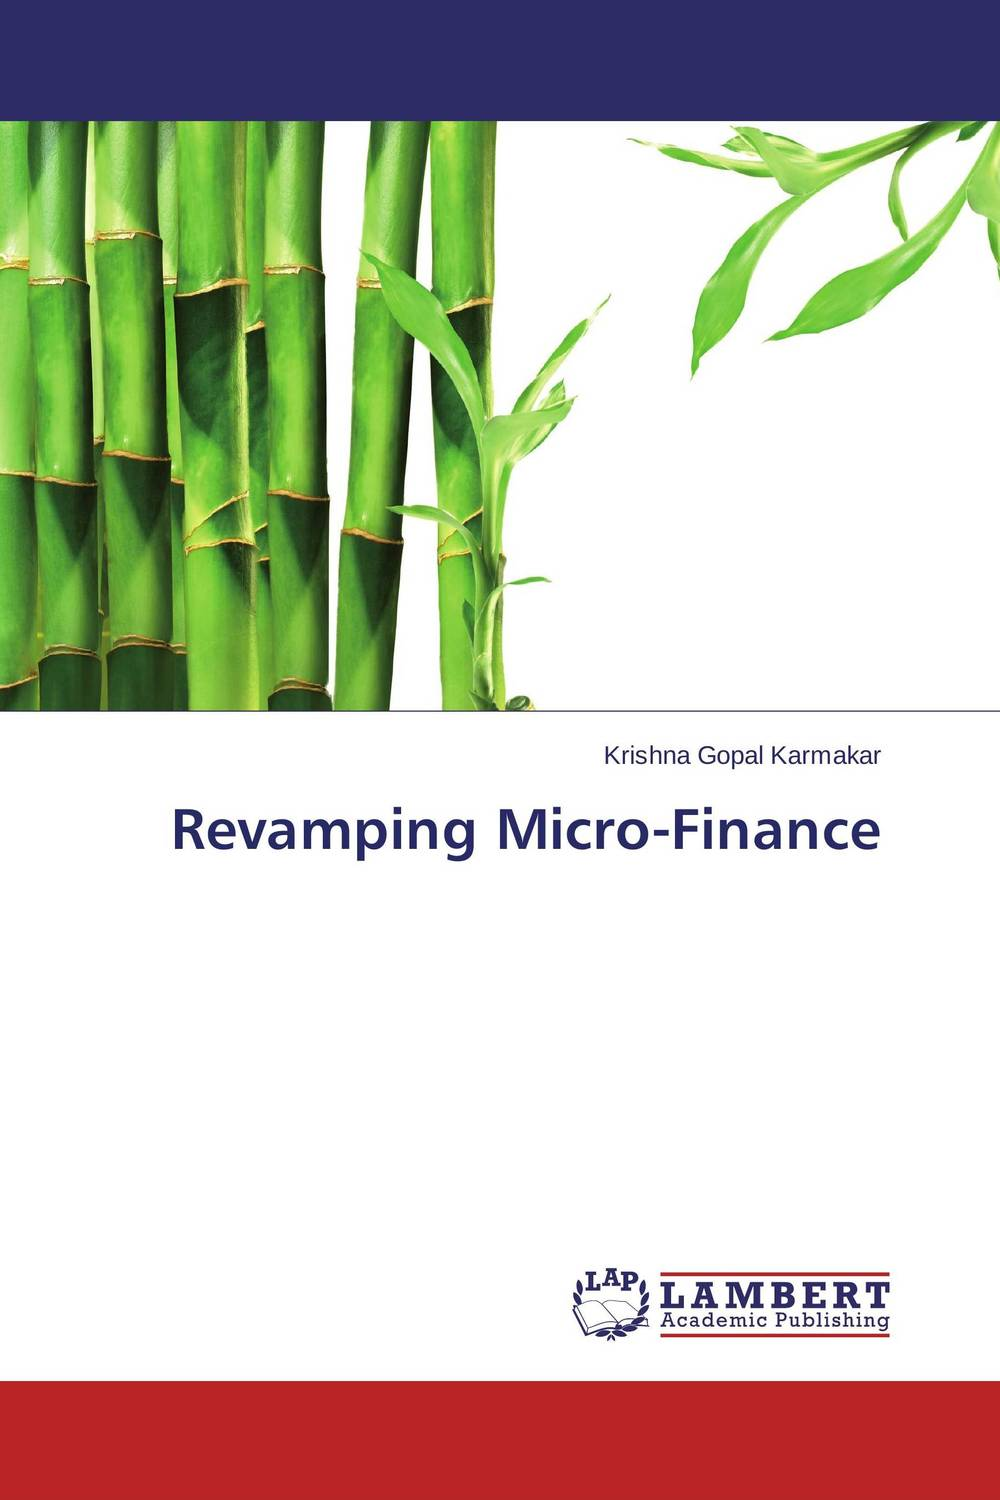 Revamping Micro-Finance jaynal ud din ahmed and mohd abdul rashid institutional finance for micro and small entreprises in india